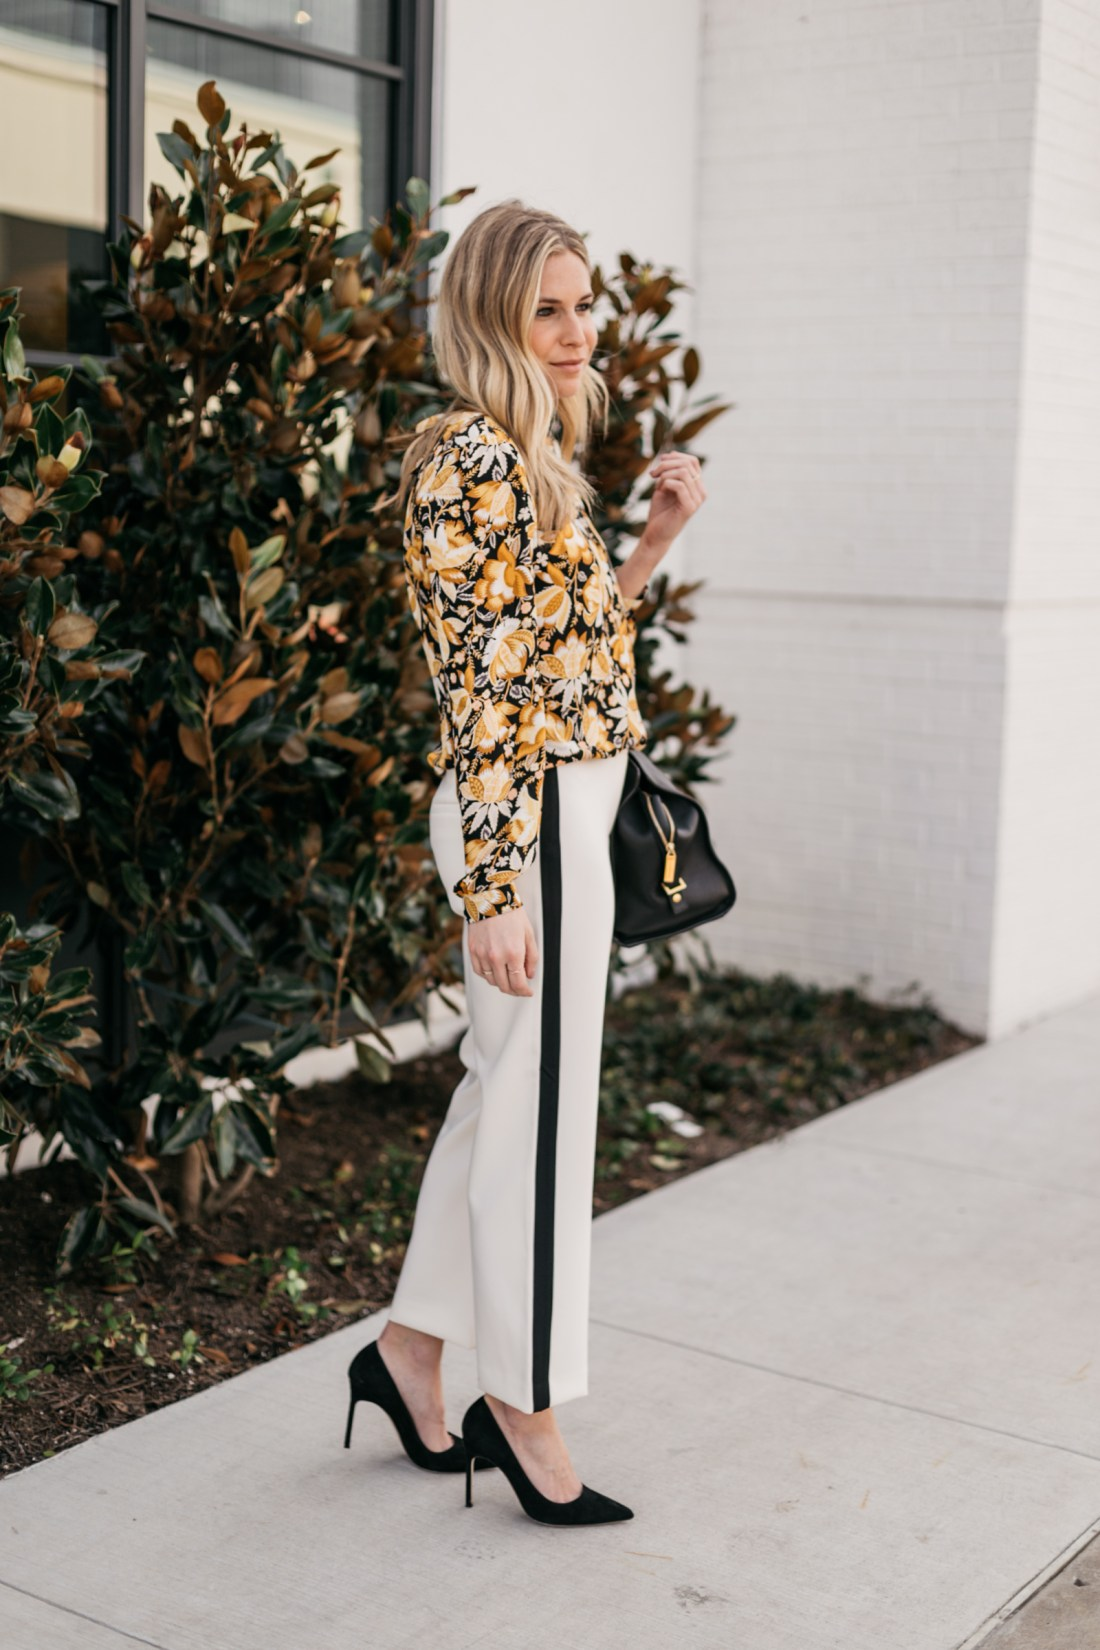 OUTFIT 2  White with Black Stripe Pants // Yellow and Black Floral Long Sleeve Blouse // Black Suede Heels // Black Work Bag